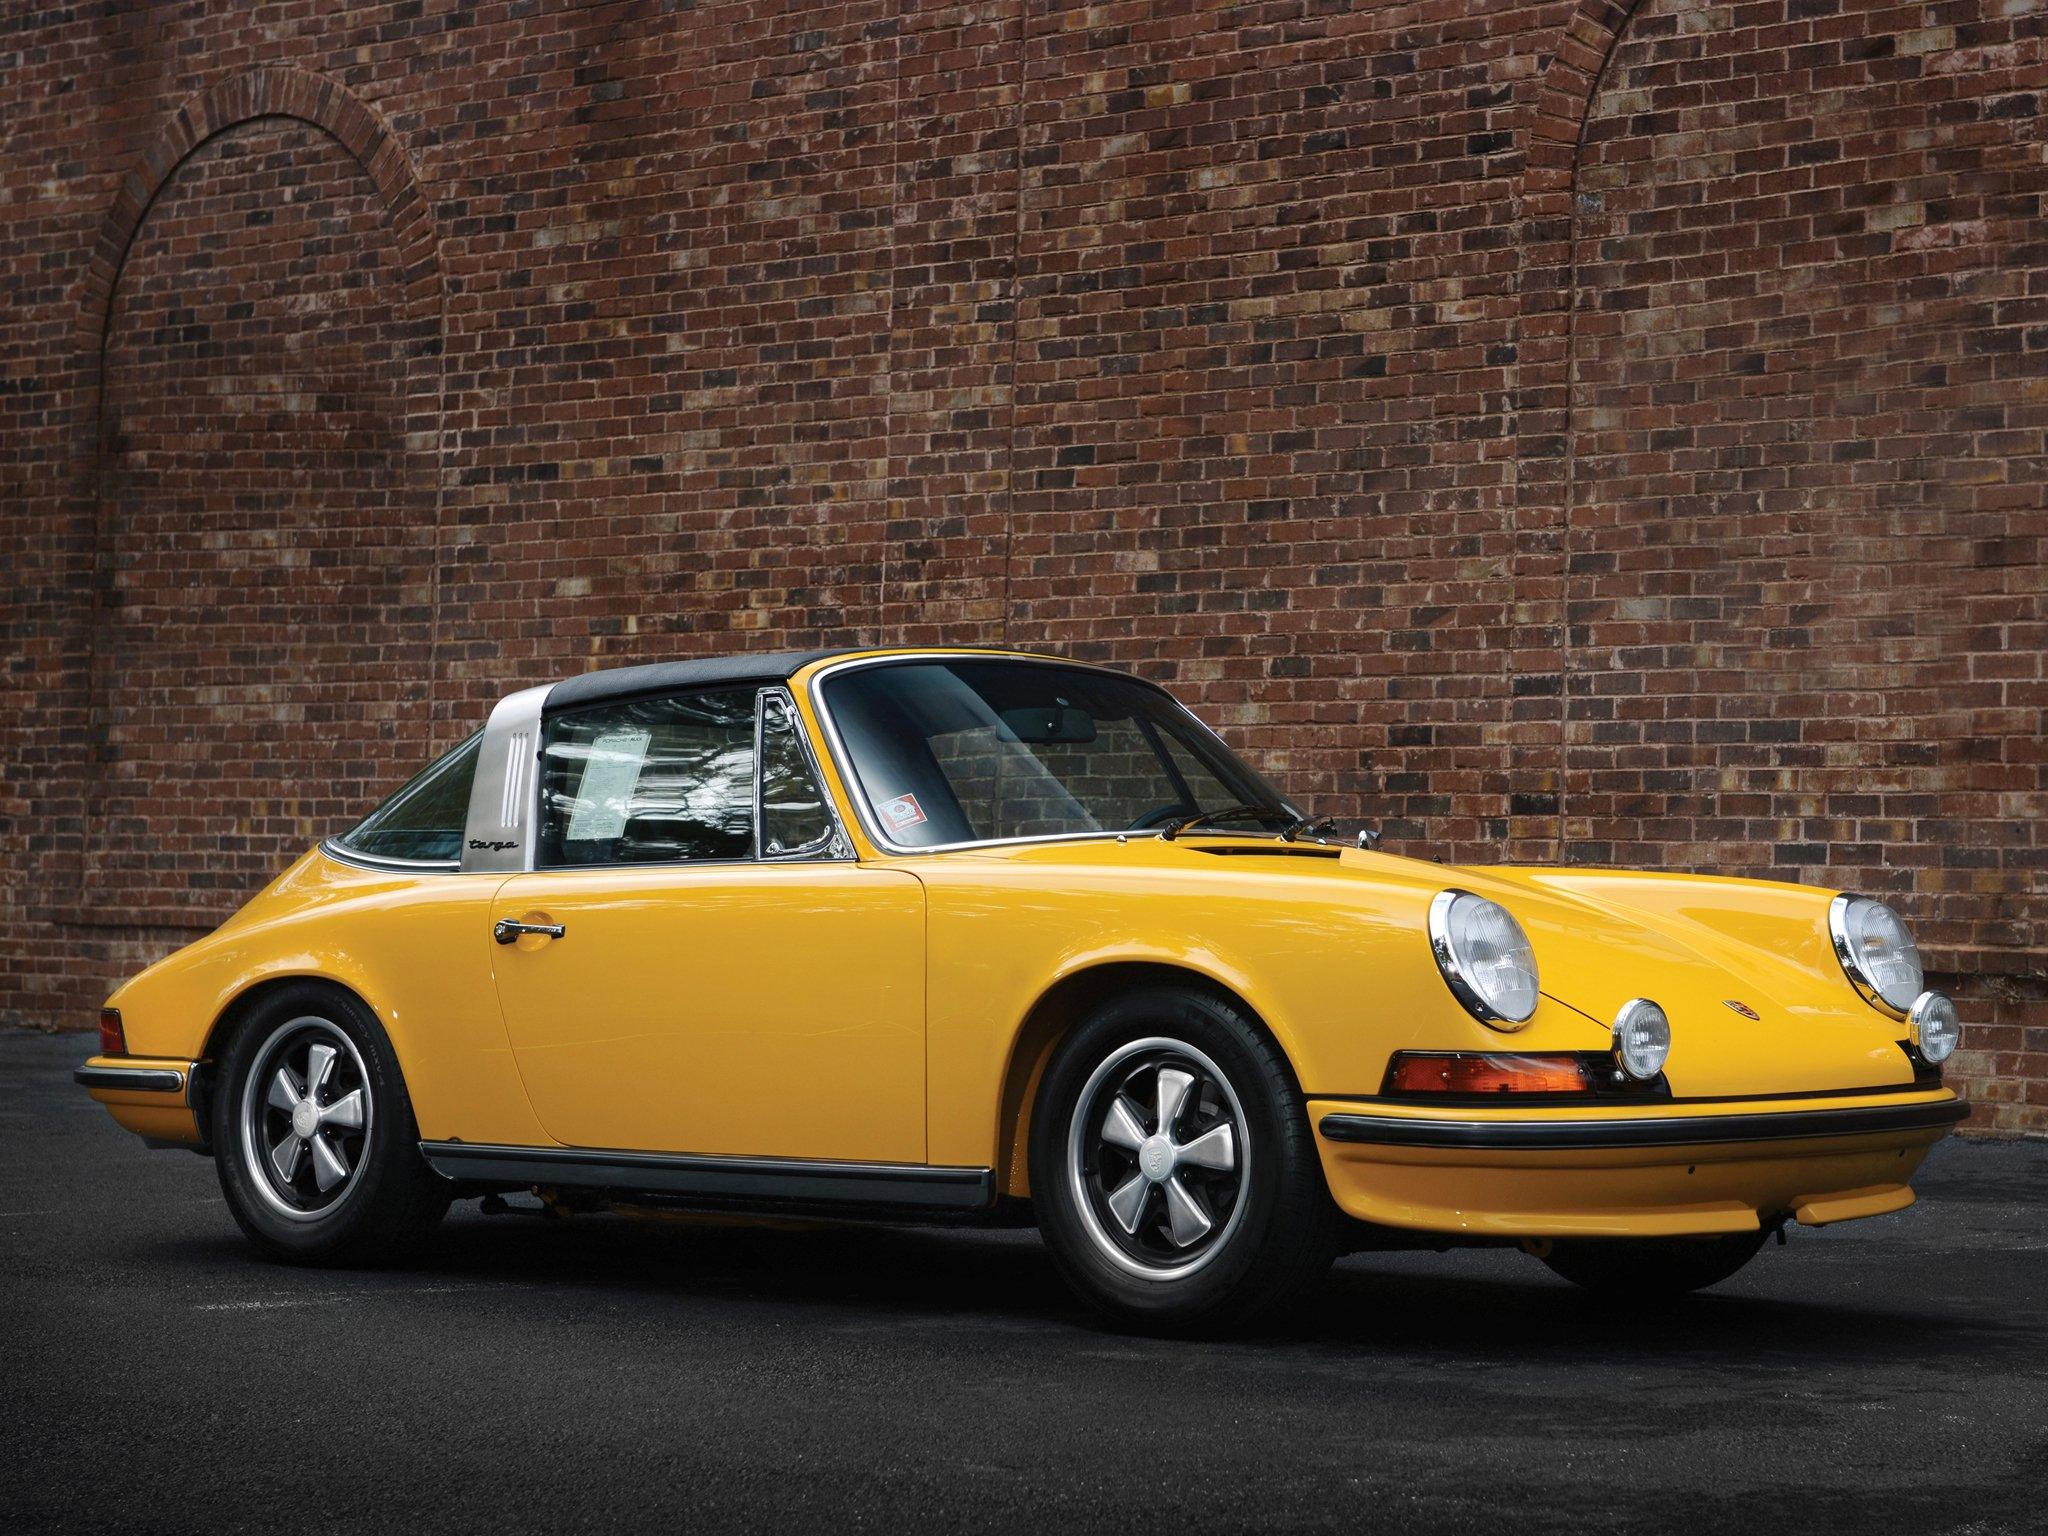 porsche 911 do 2 4 targa 911 1971 cars wallpaper 2048x1536 629243 wallpaperup. Black Bedroom Furniture Sets. Home Design Ideas